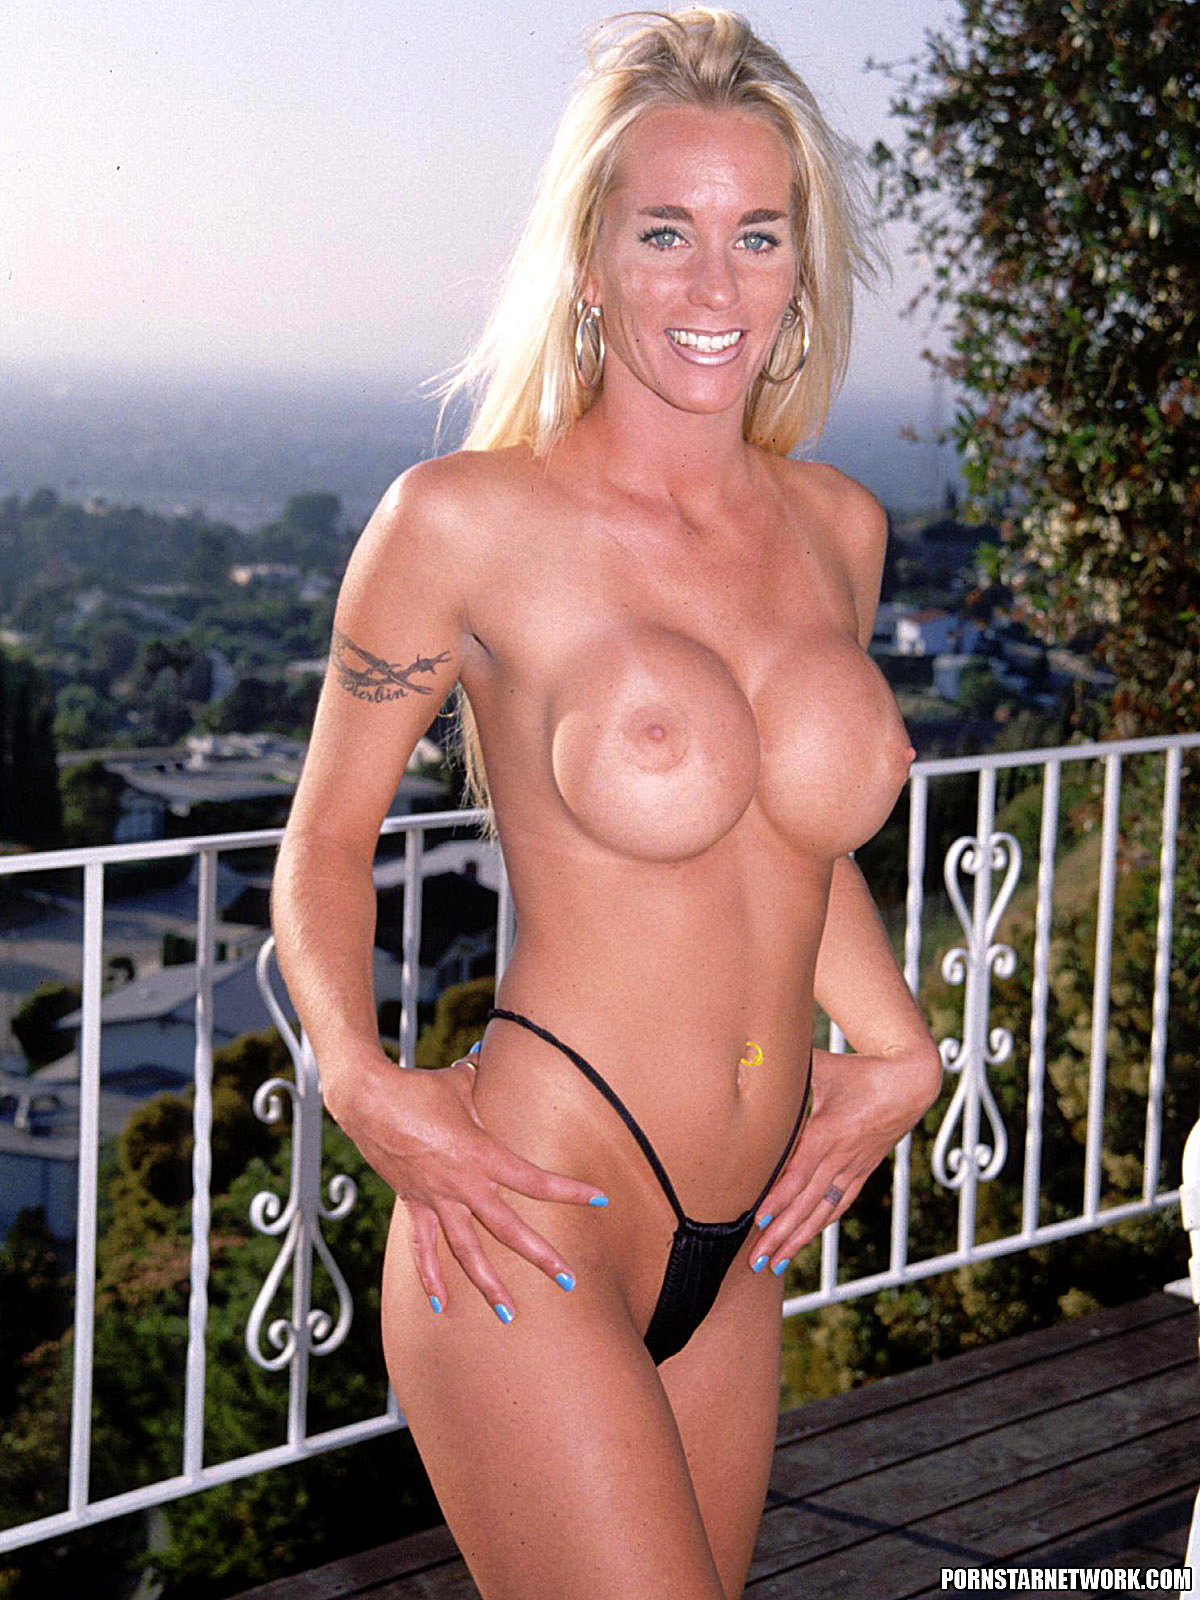 Cheyanne - Blonde Milf With Big Tits Loves Anal 58557-2923